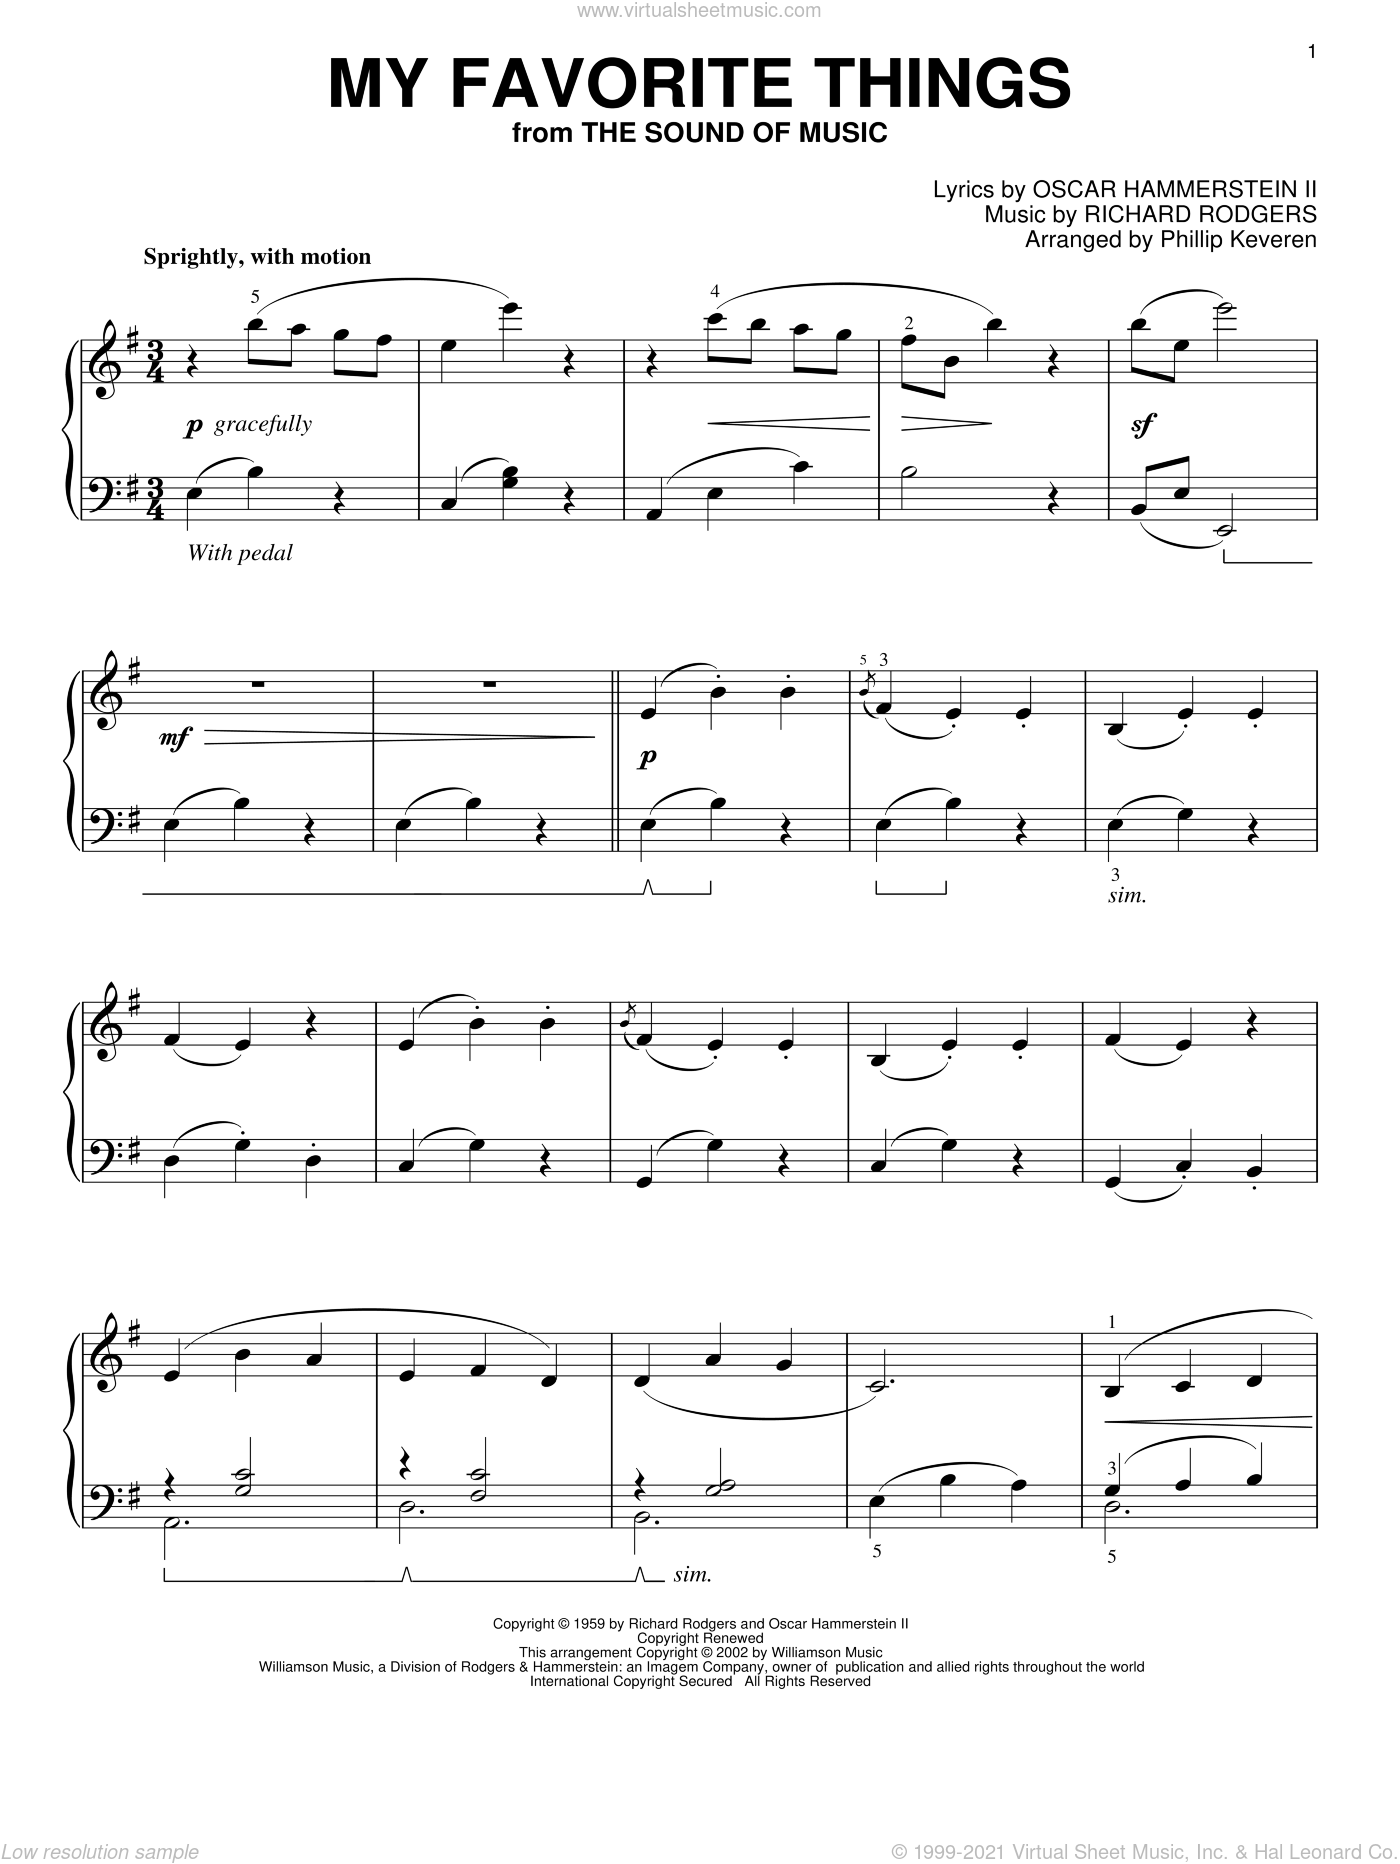 My Favorite Things sheet music for piano solo by Rodgers & Hammerstein, Phillip Keveren, The Sound Of Music (Musical), Oscar II Hammerstein and Richard Rodgers, intermediate skill level